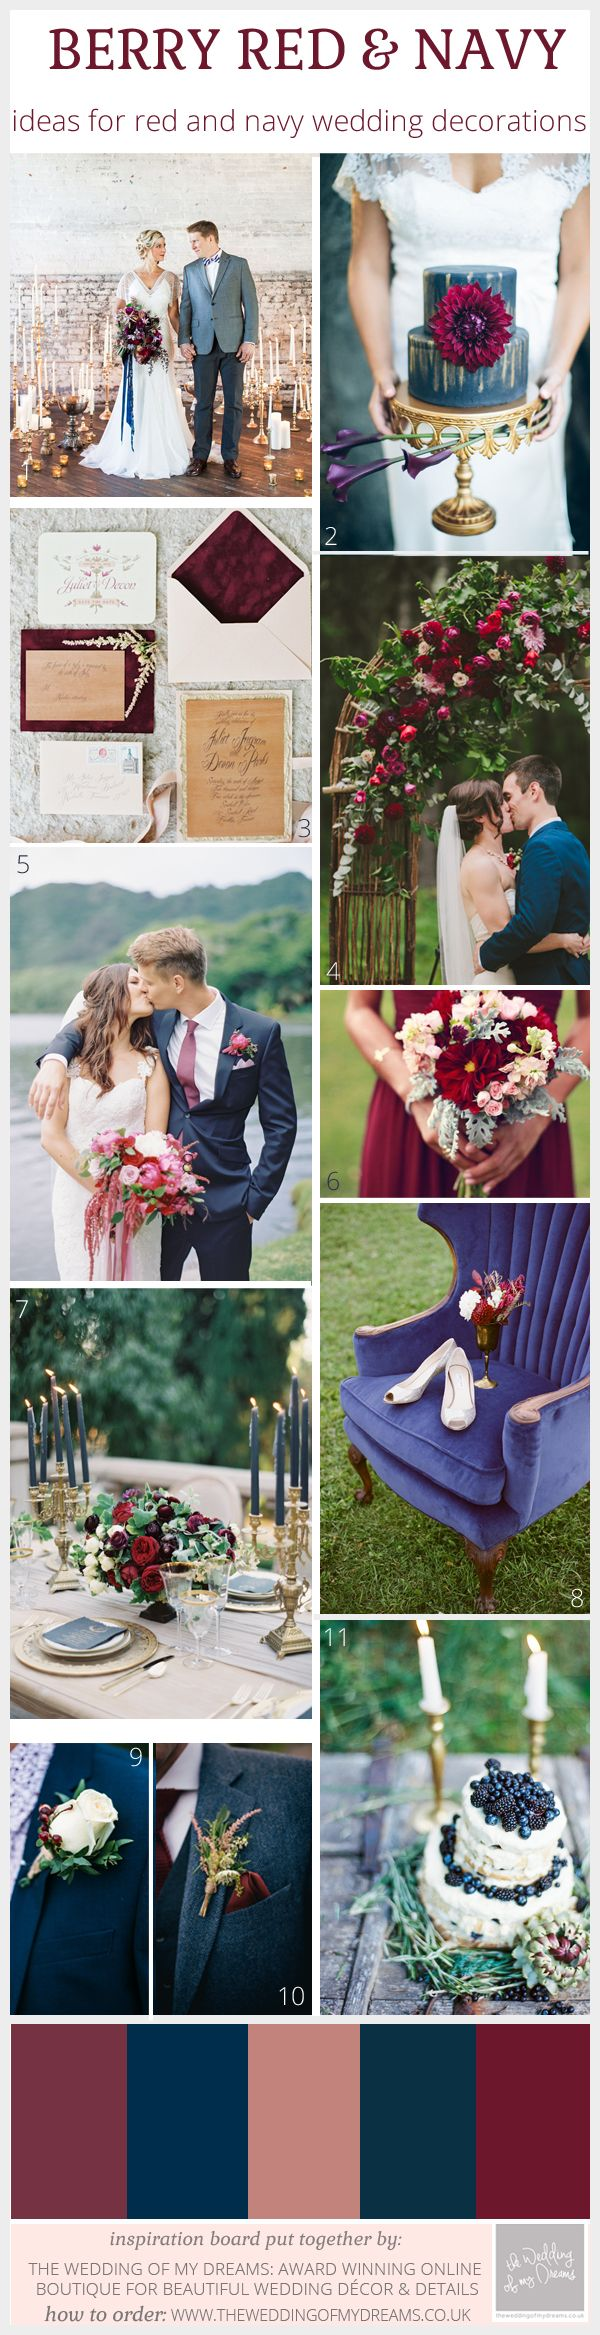 There are so many rich, warm and vibrant color palettes that go hand in hand with an autumn wedding. My particular favorite color combinations include red and navy, with subtle accents of gold for a touch of opulence